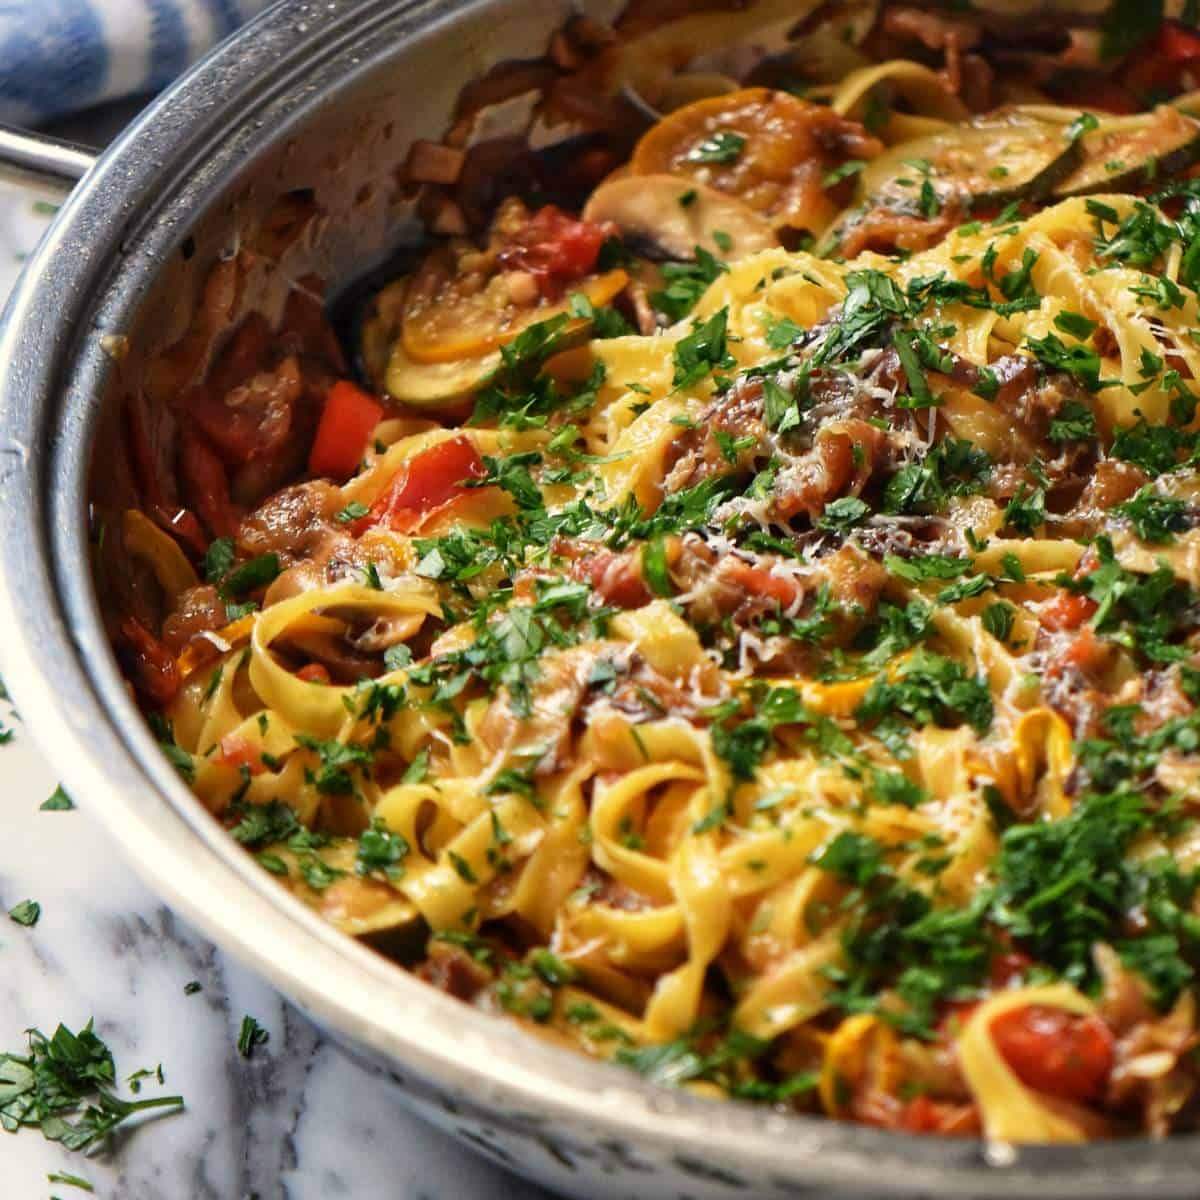 The grilled vegetables have been properly combined with the pasta.